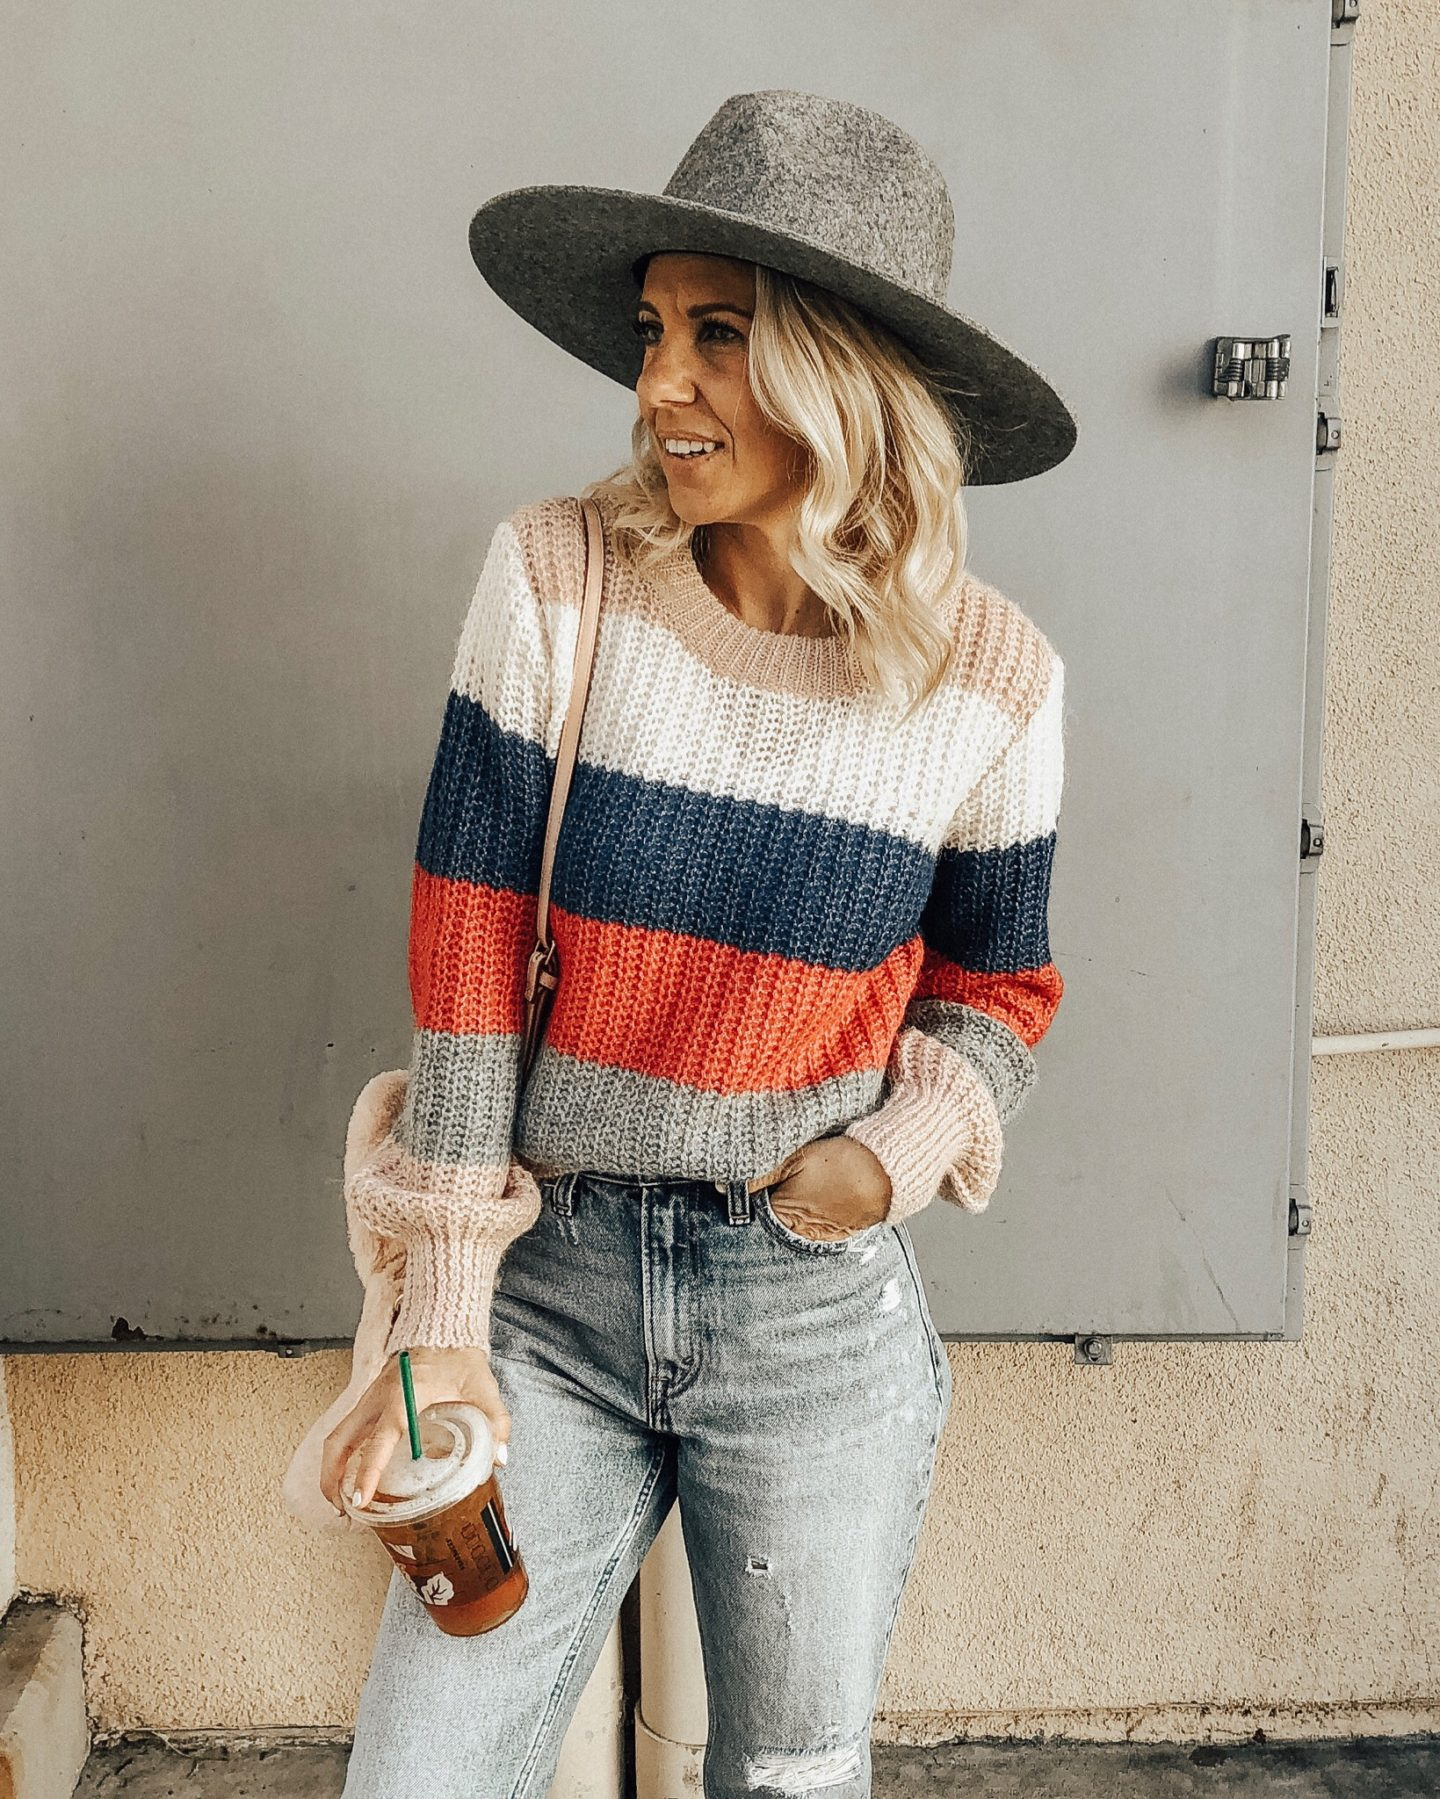 NOVEMBER TOP 10- Jaclyn De Leon Style + striped sweater + mom jeans + faux fur handbag + abercrombie + sweater weather + casual style + fedora hat + fall style + blonde hair